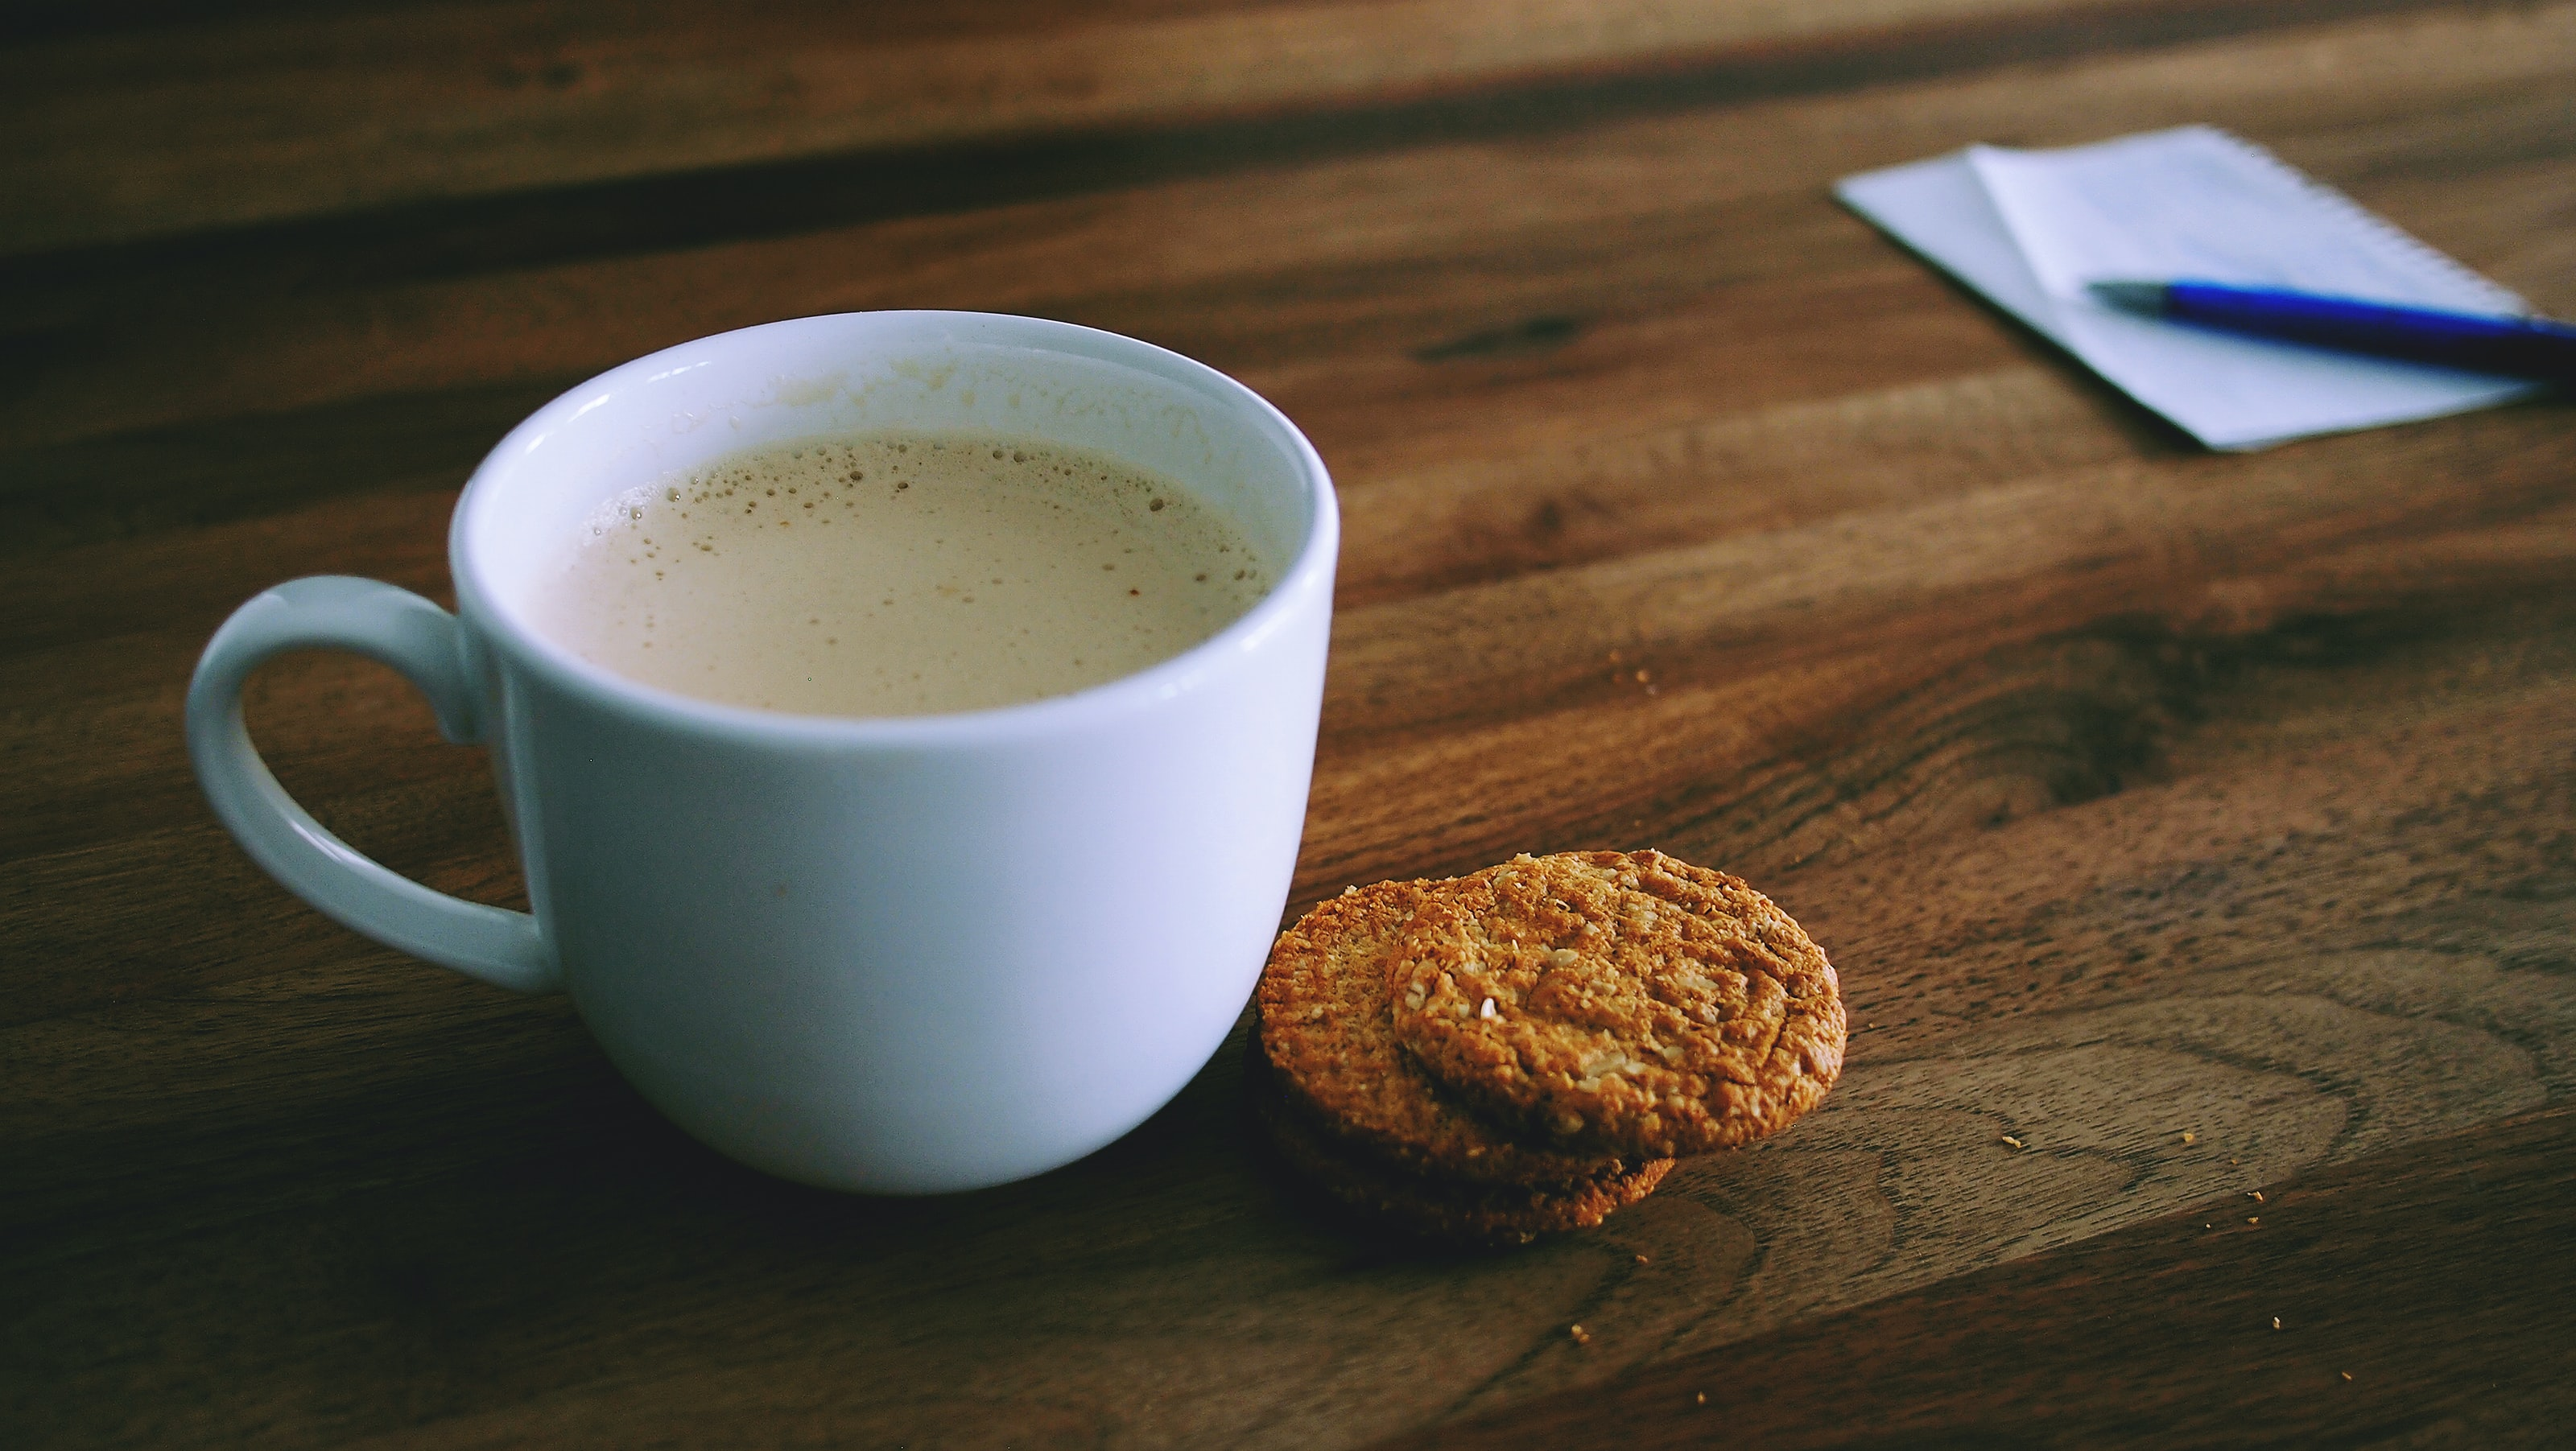 A mug of coffee with a biscuit sitting next to it